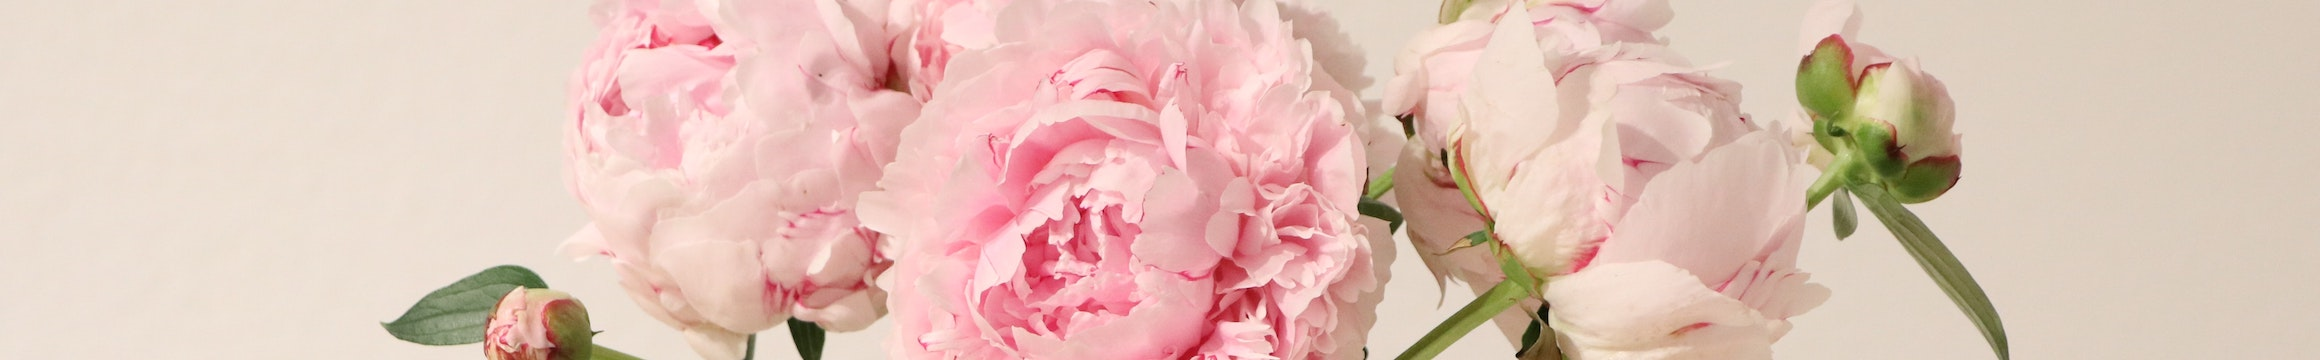 Carnations 3